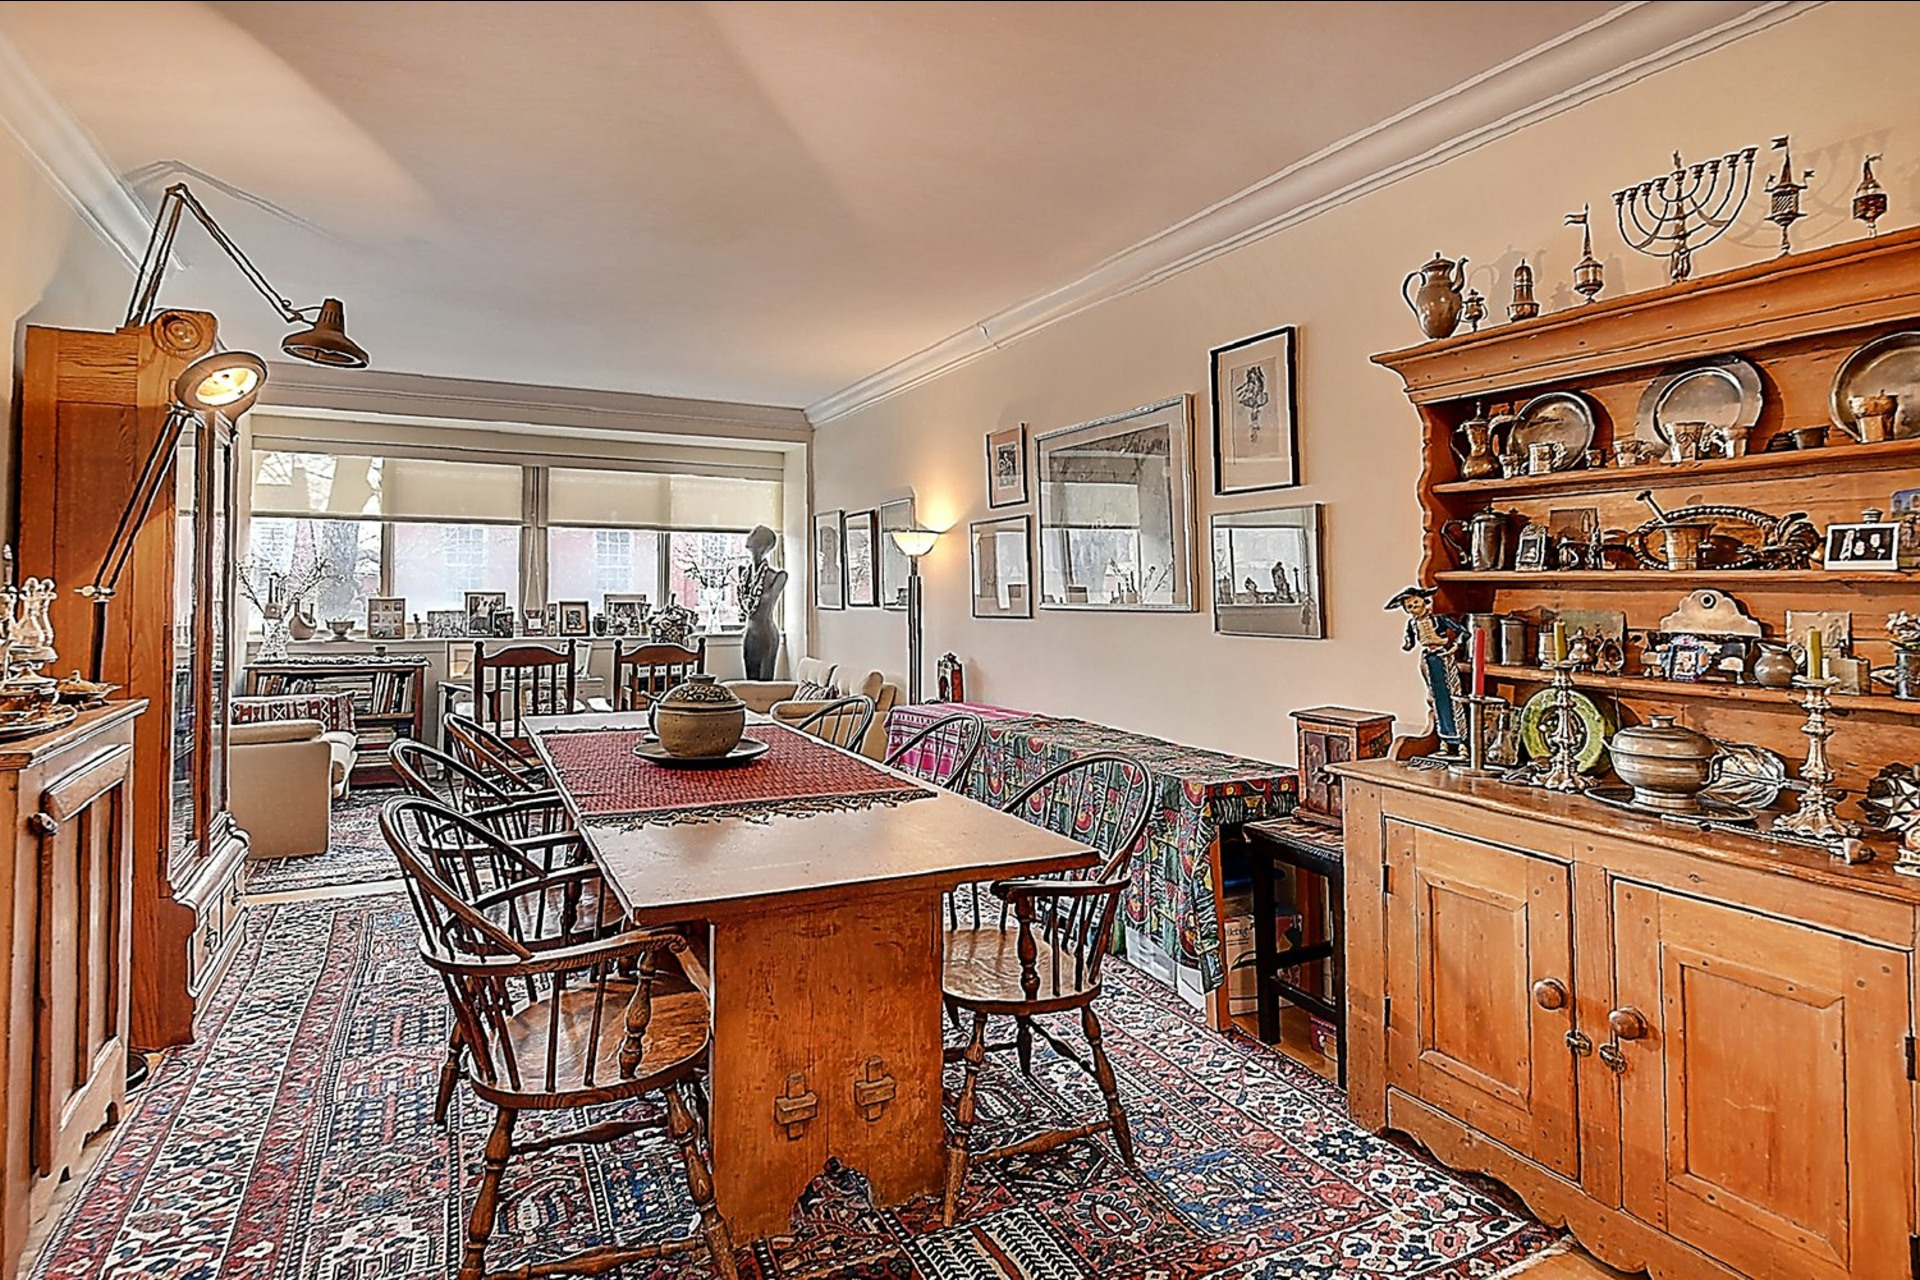 image 5 - Apartment For sale Westmount - 5 rooms